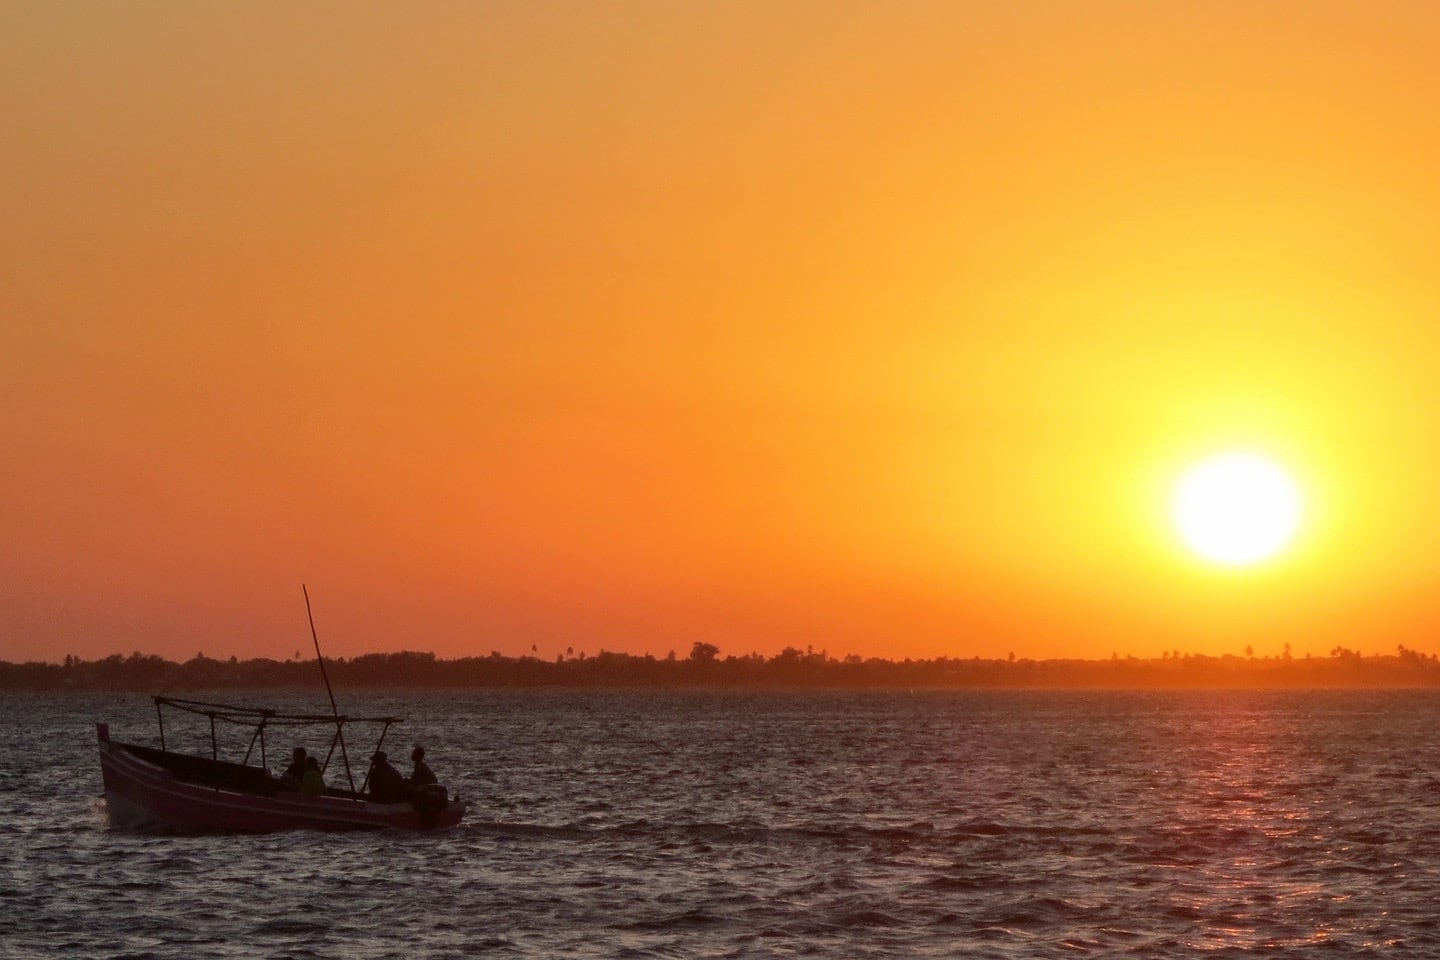 Ilha de Mocambique sunset with dhow